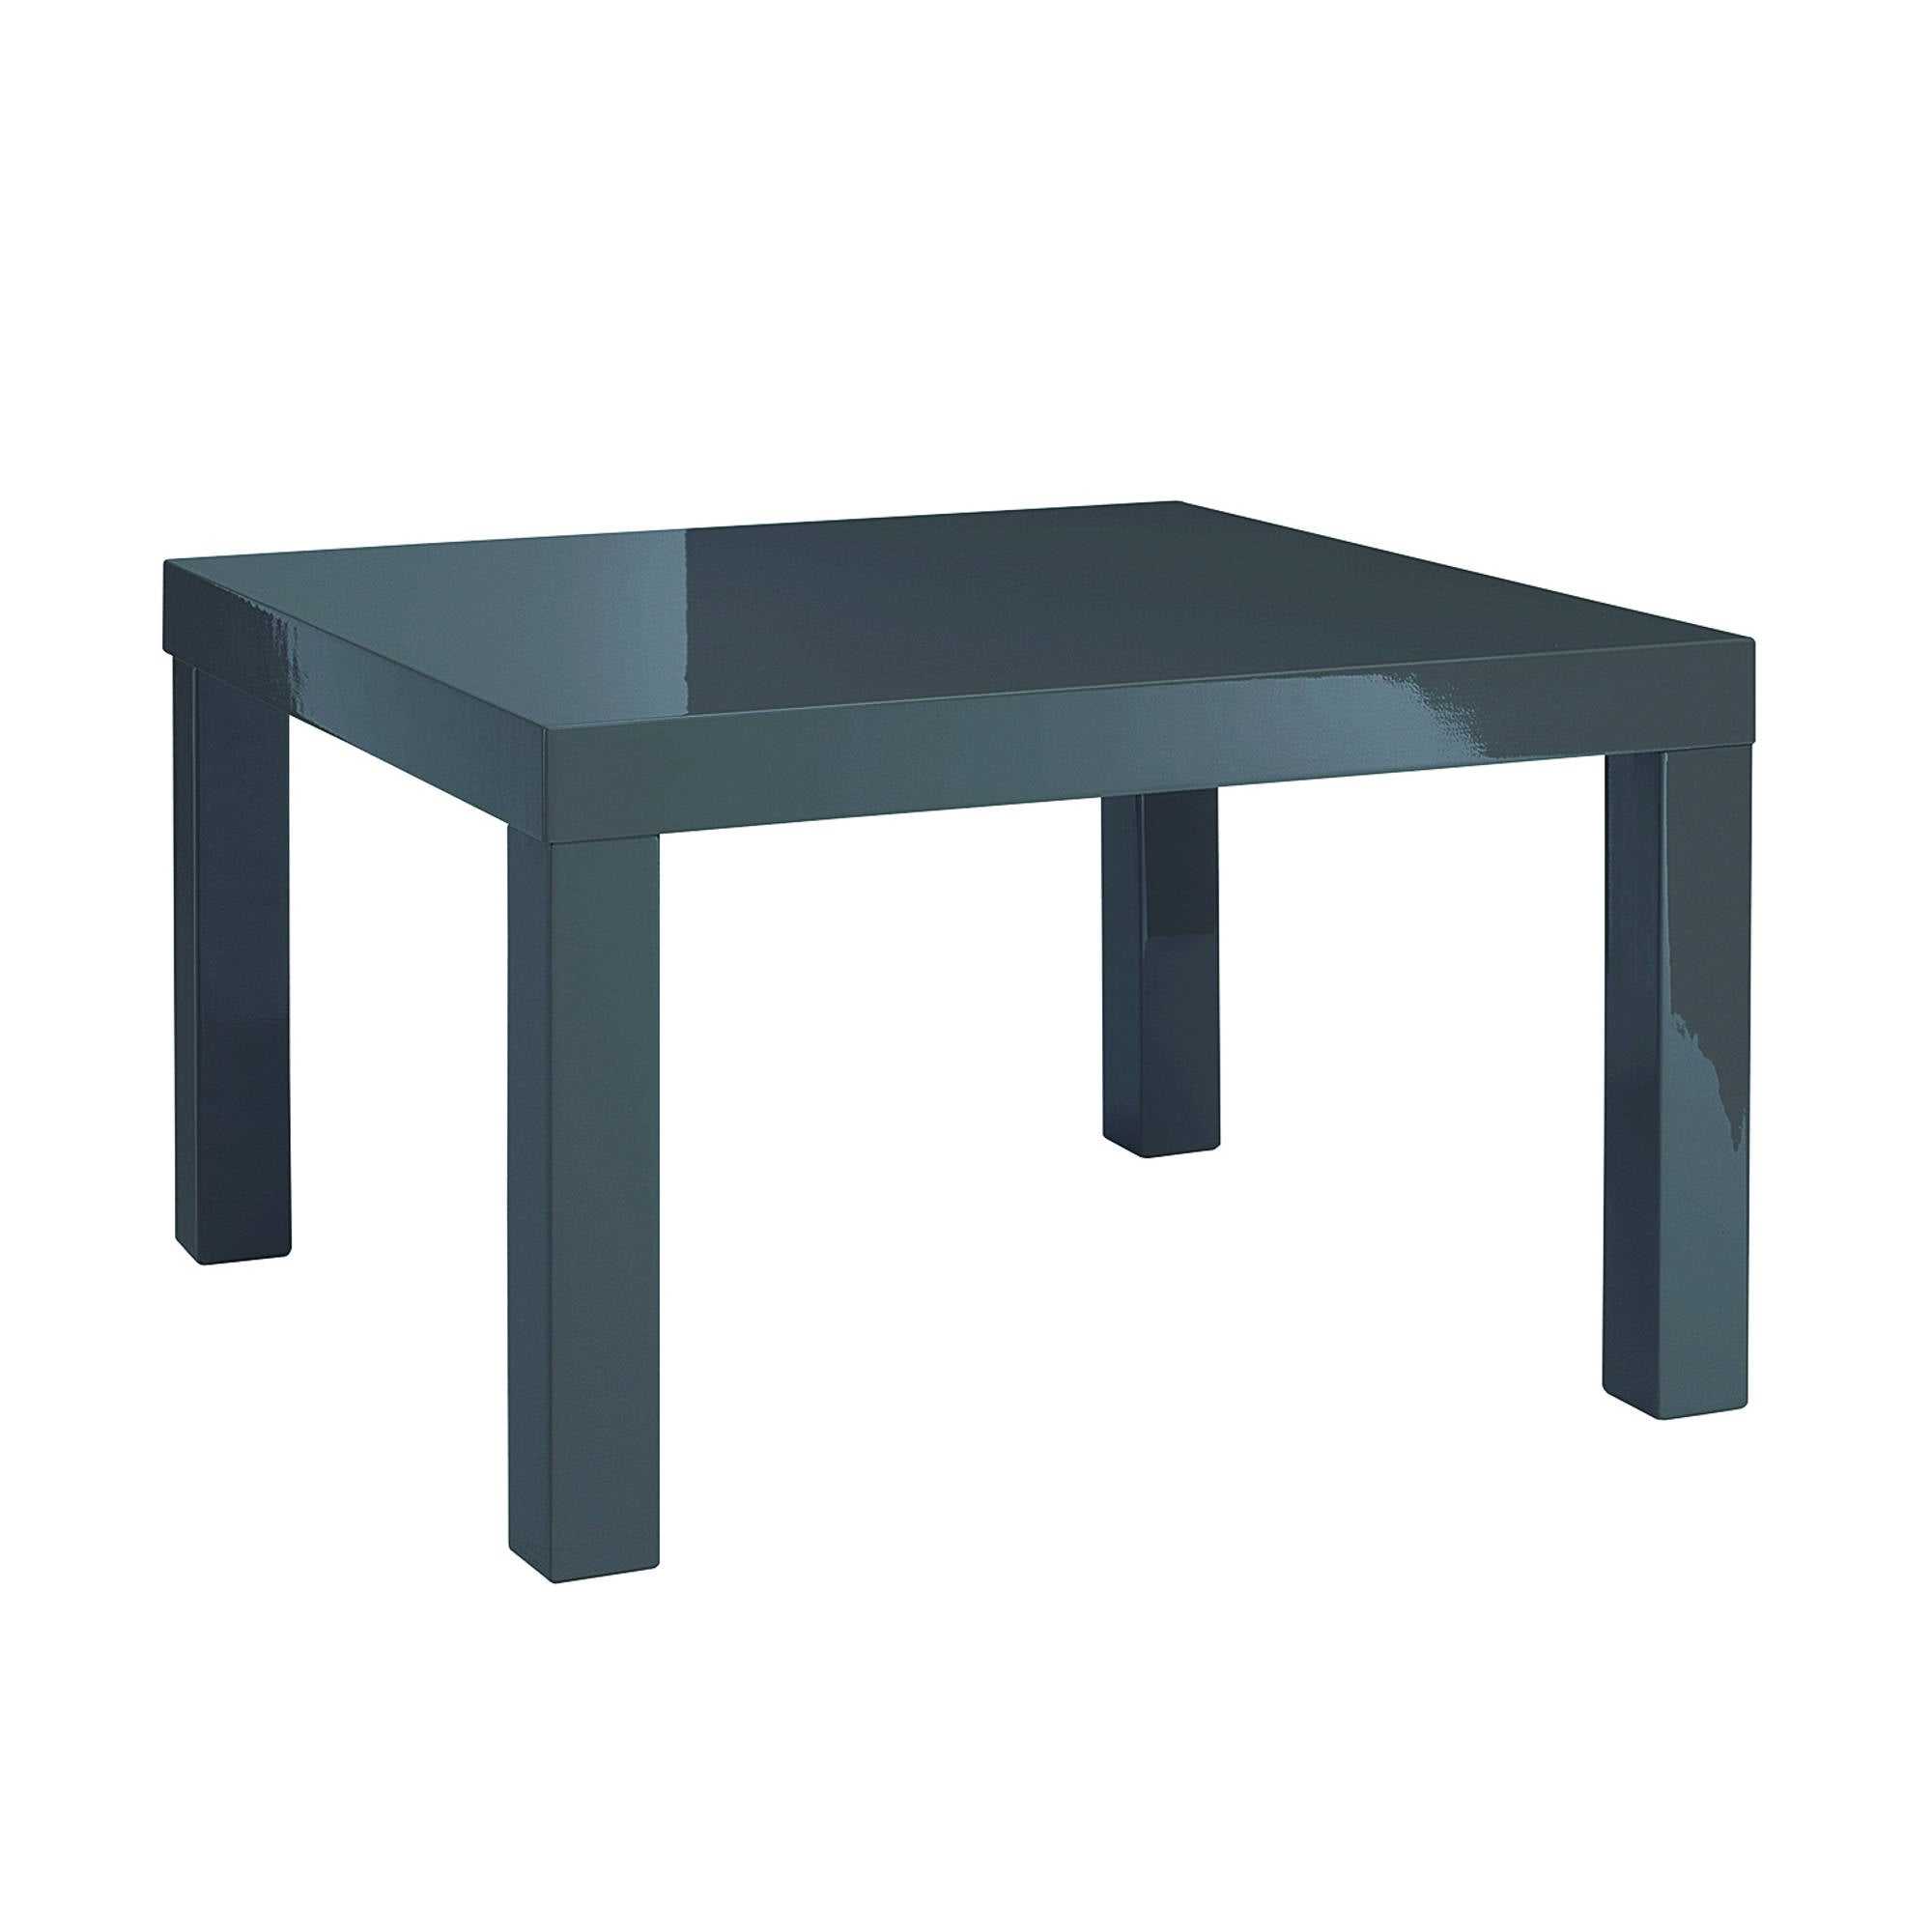 Sterling Small Dining Table in Charcoal